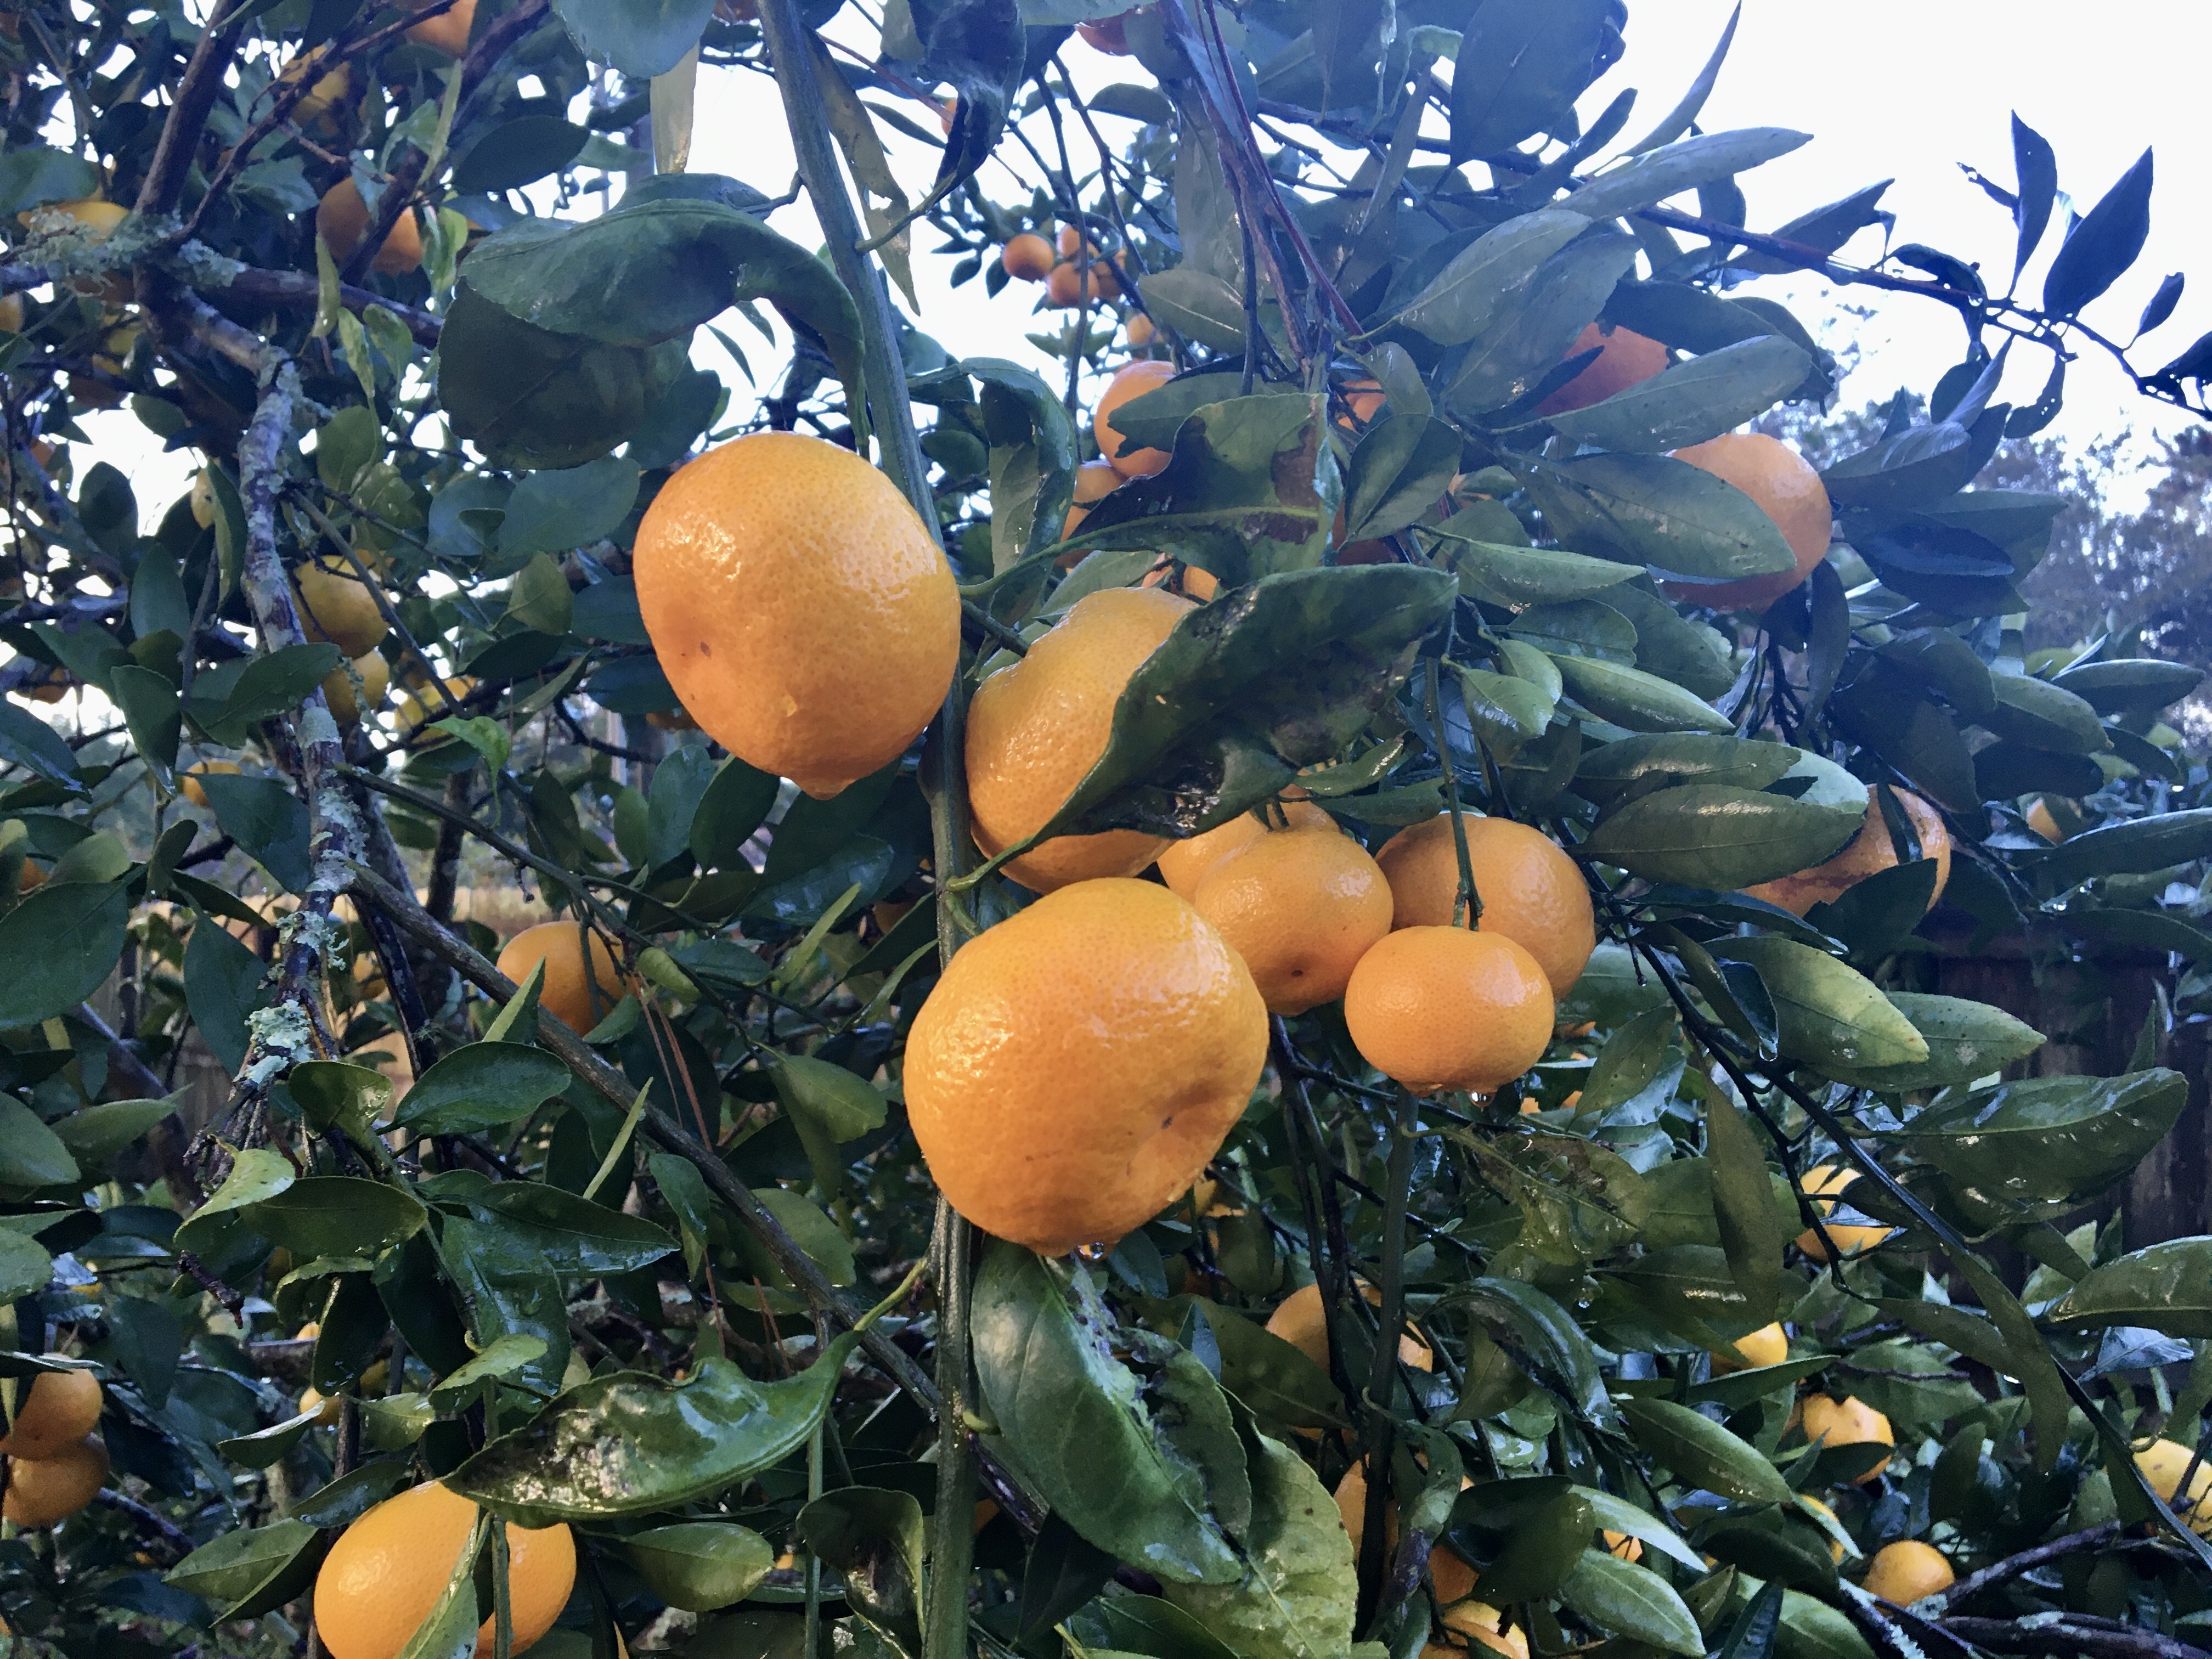 Satsumas ripen on the tree in late October.jpg thumbnail